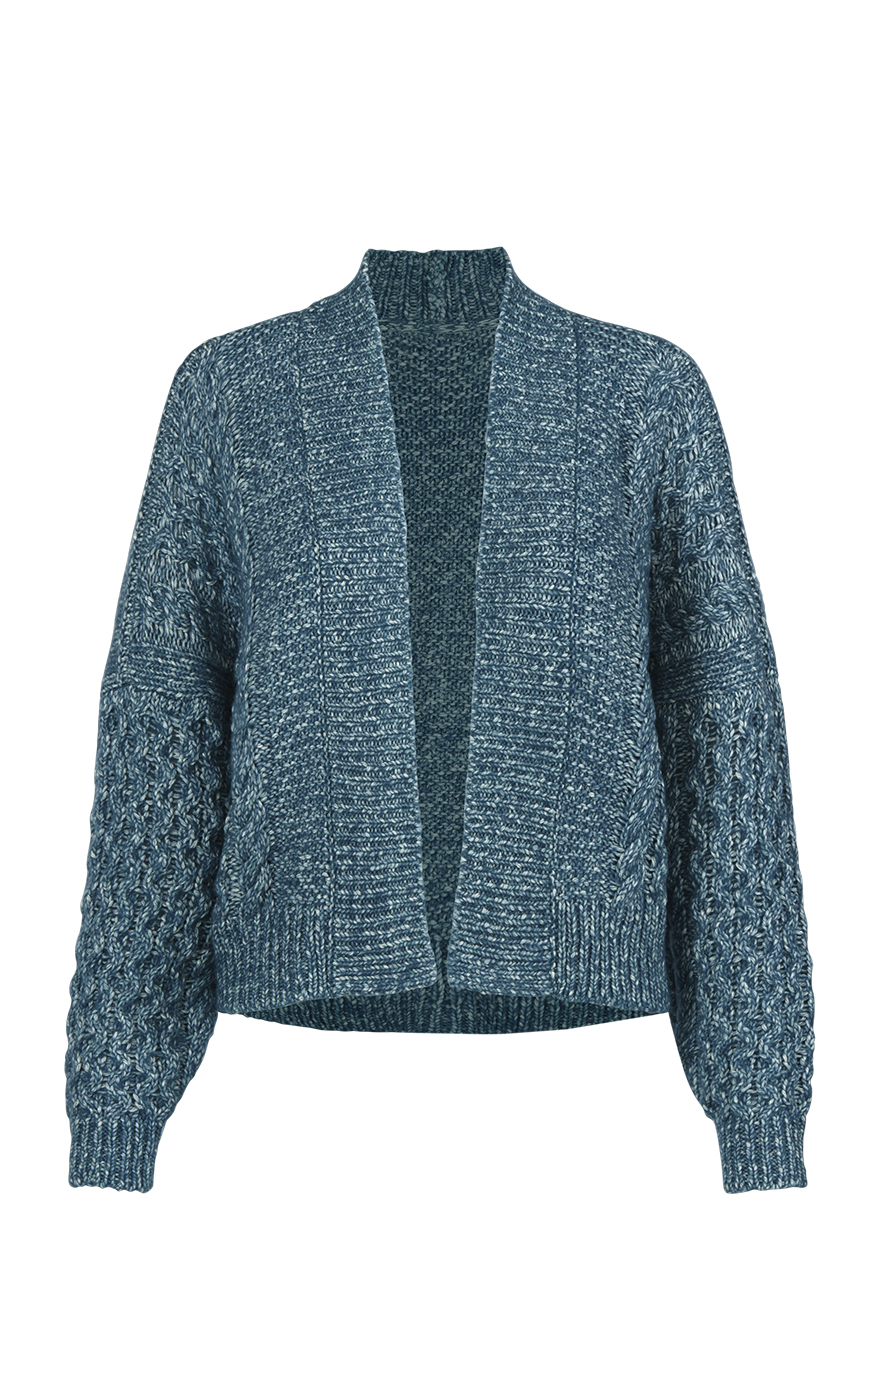 Astral Cardigan in Celestial Blue Front